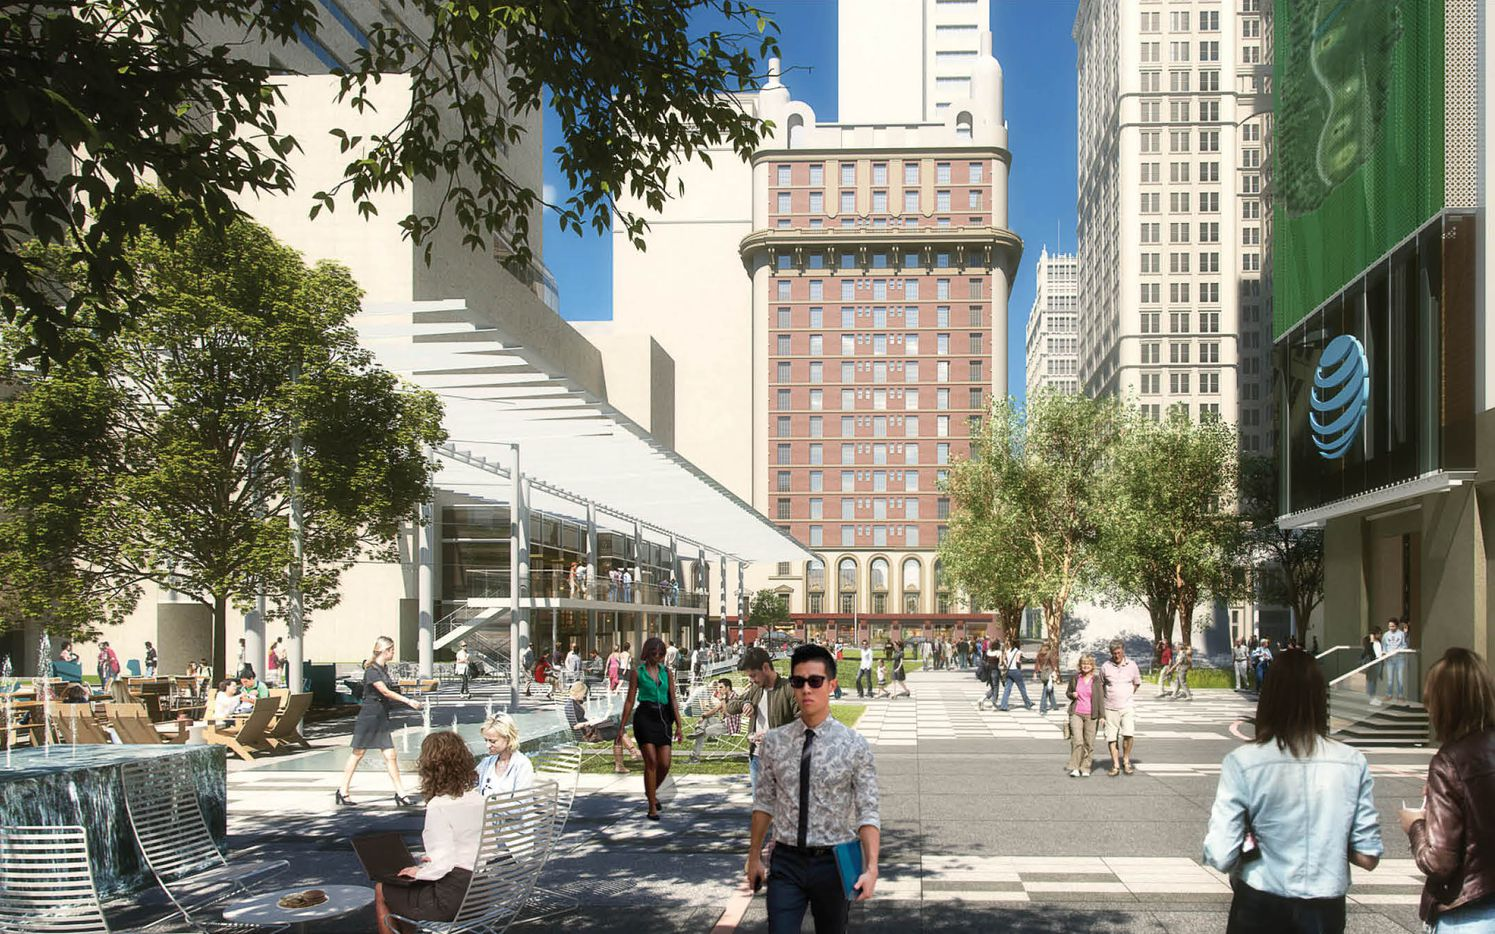 The $100 million redo of AT&T's downtown Dallas campus includes new features to bring in downtown visitors and residents.